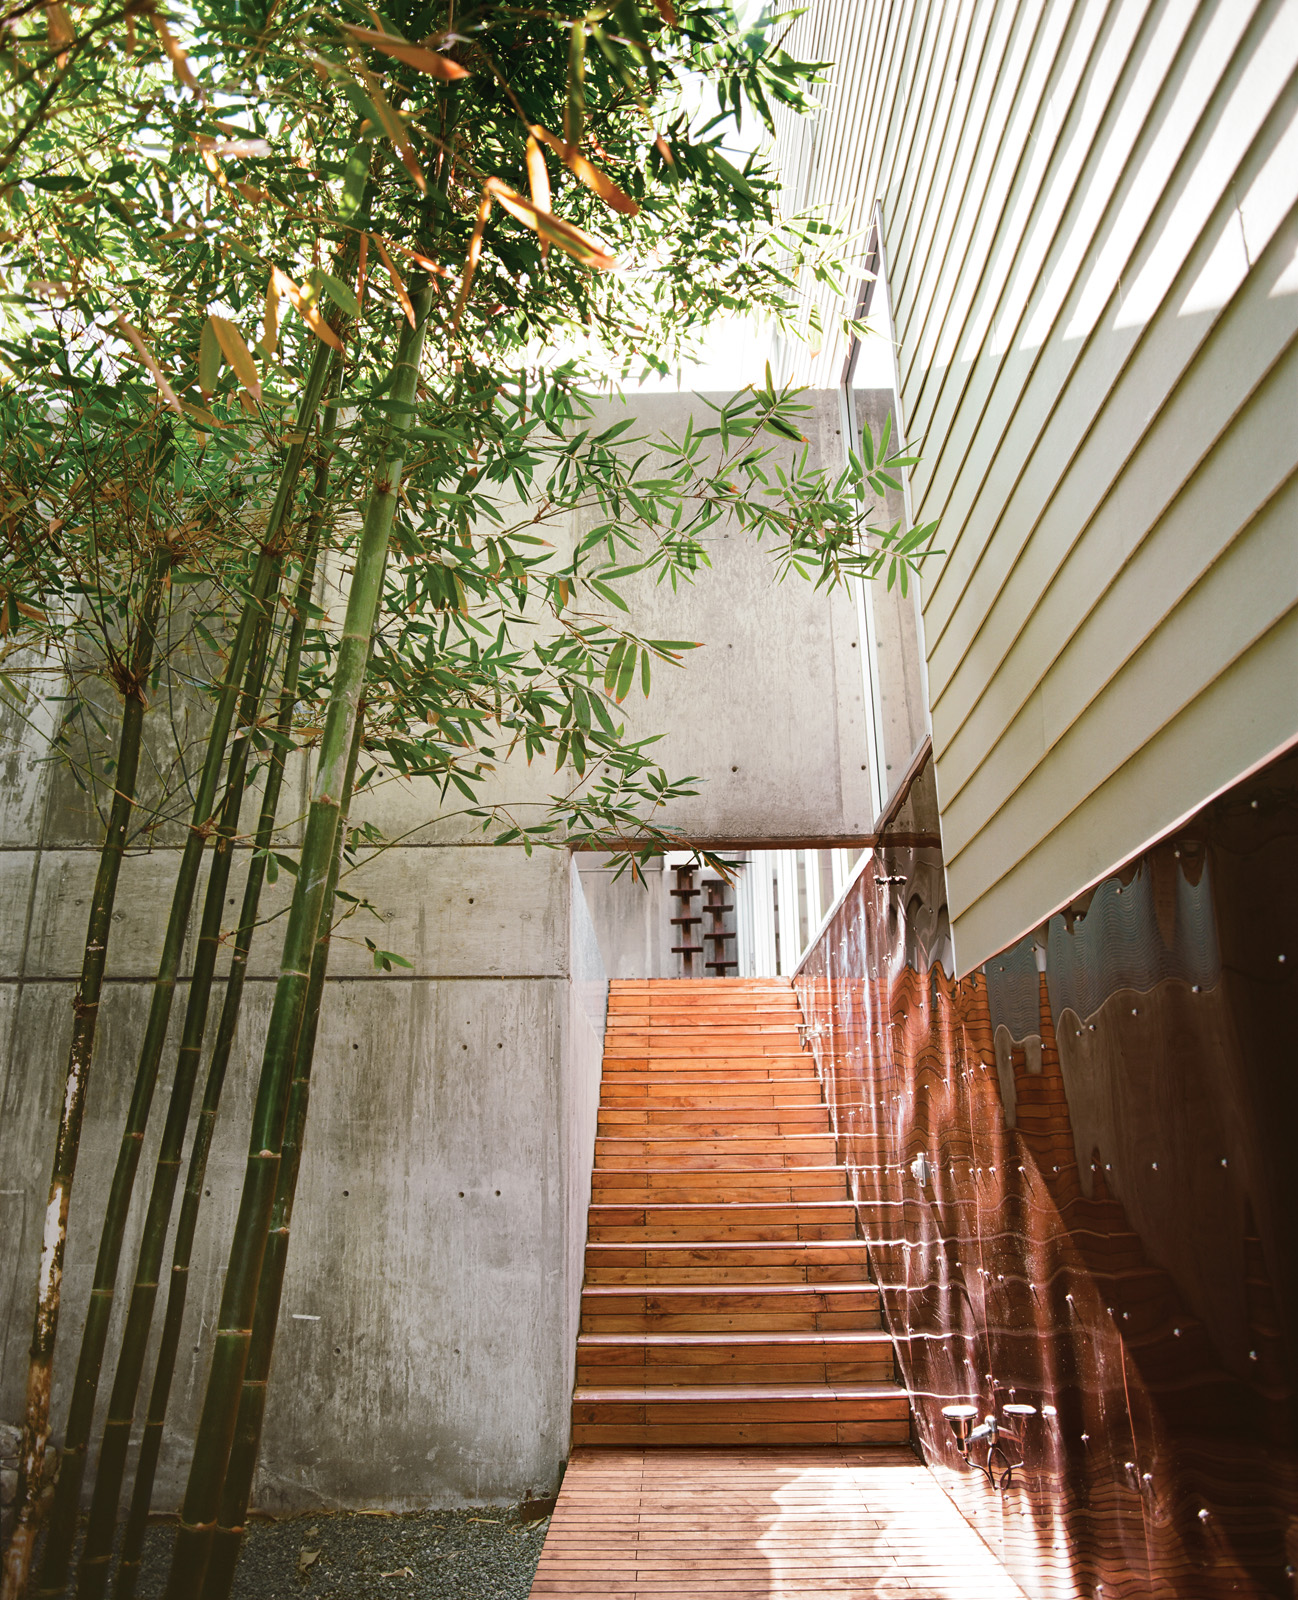 Bamboo garden by walkway leading to central courtyard